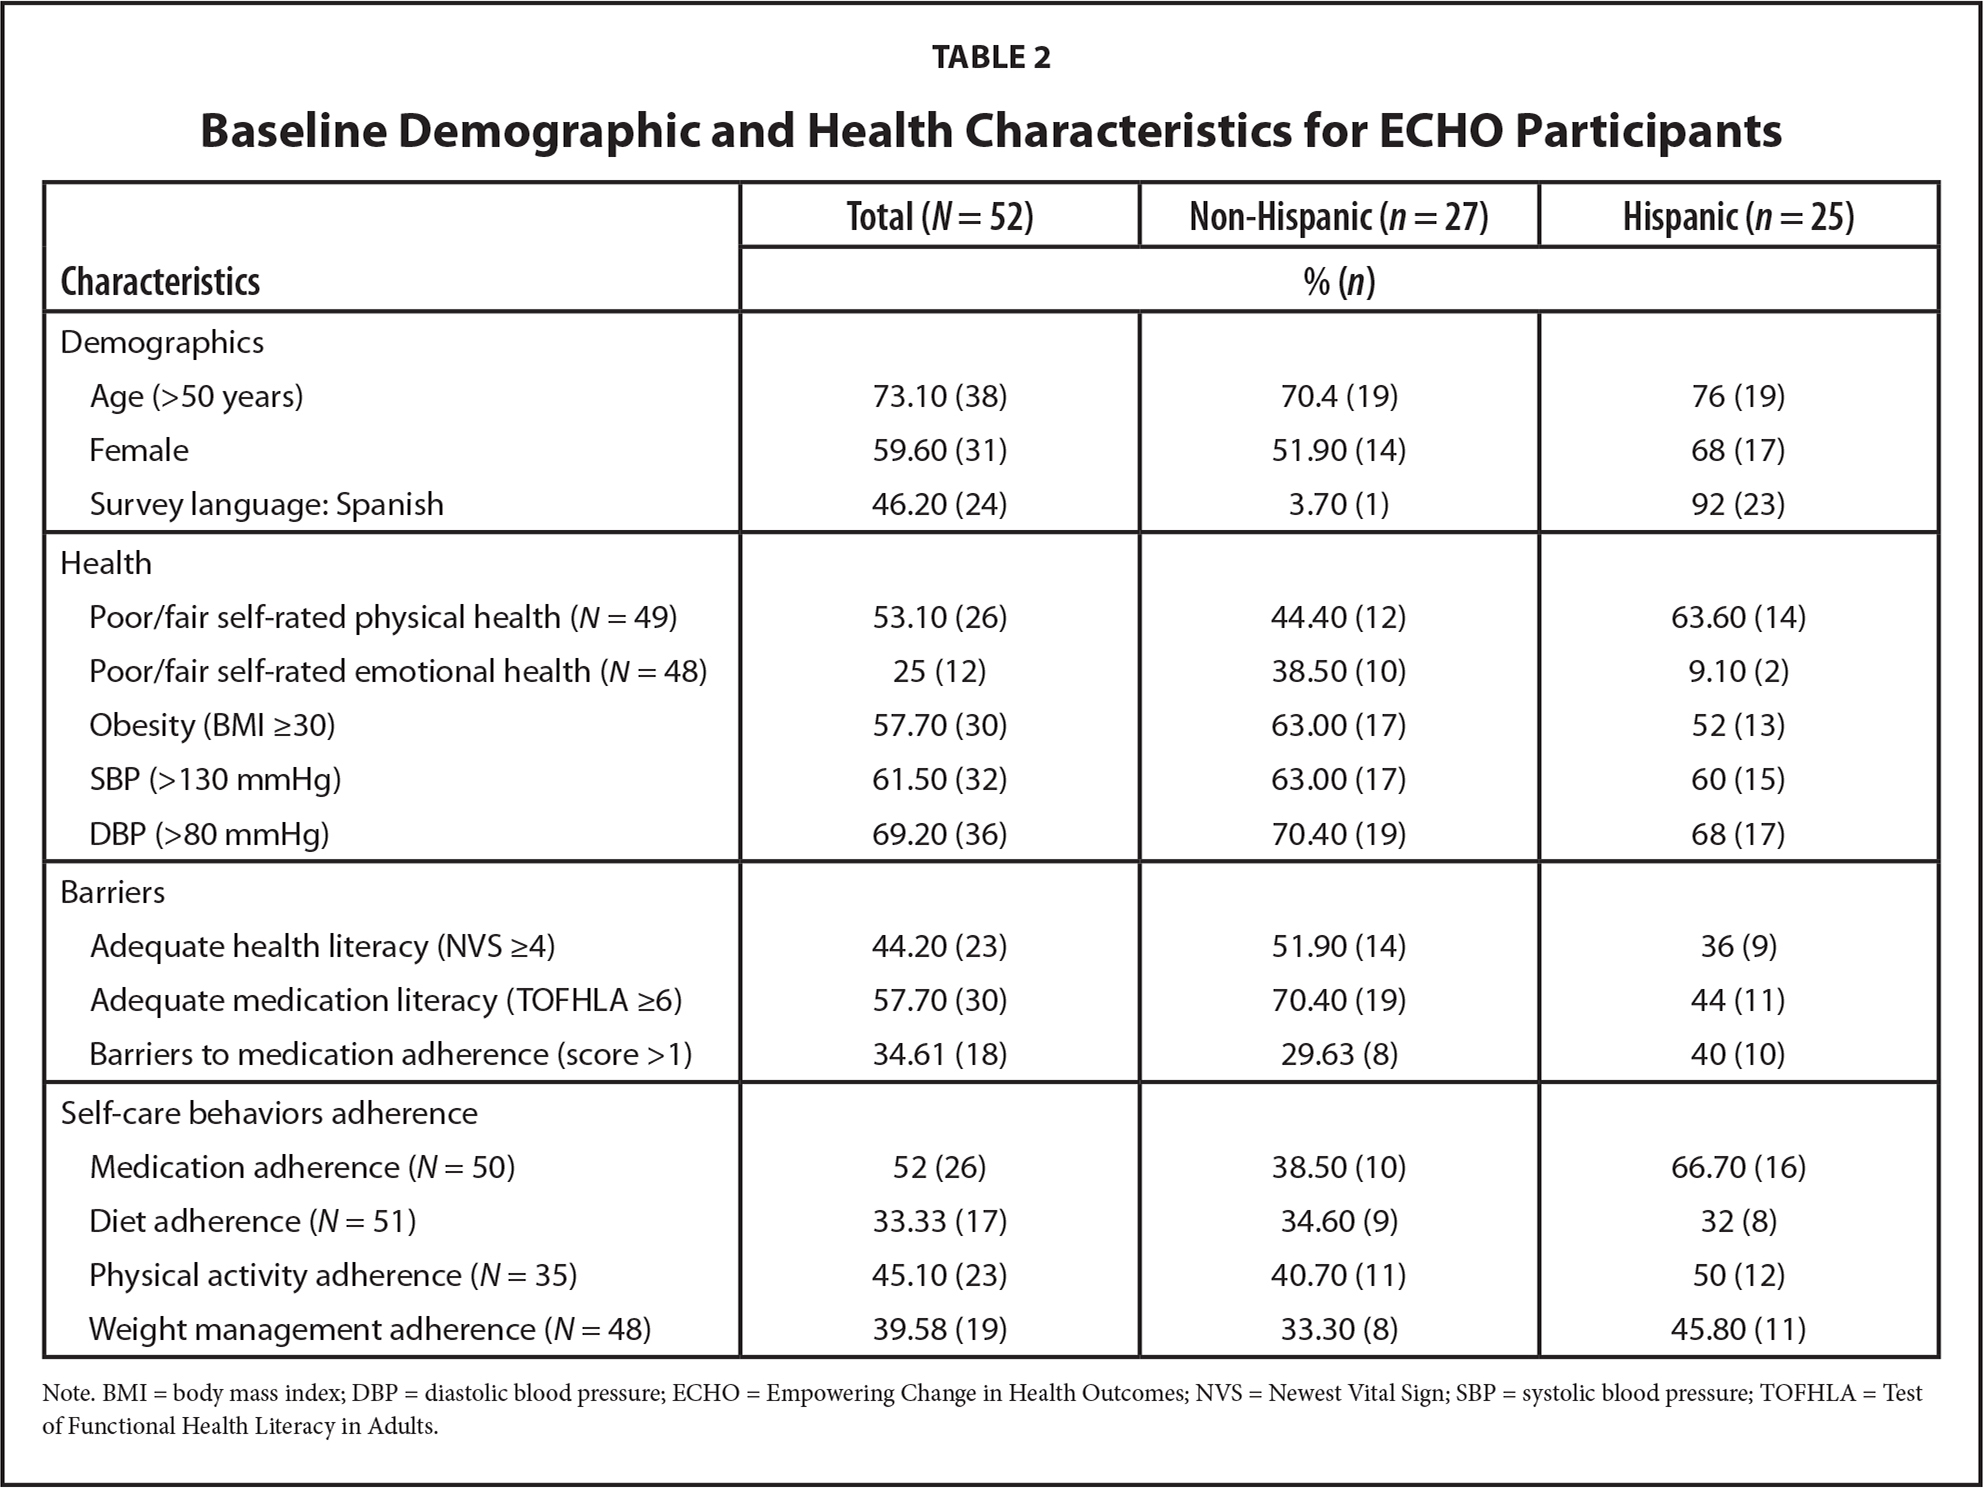 Baseline Demographic and Health Characteristics for ECHO Participants